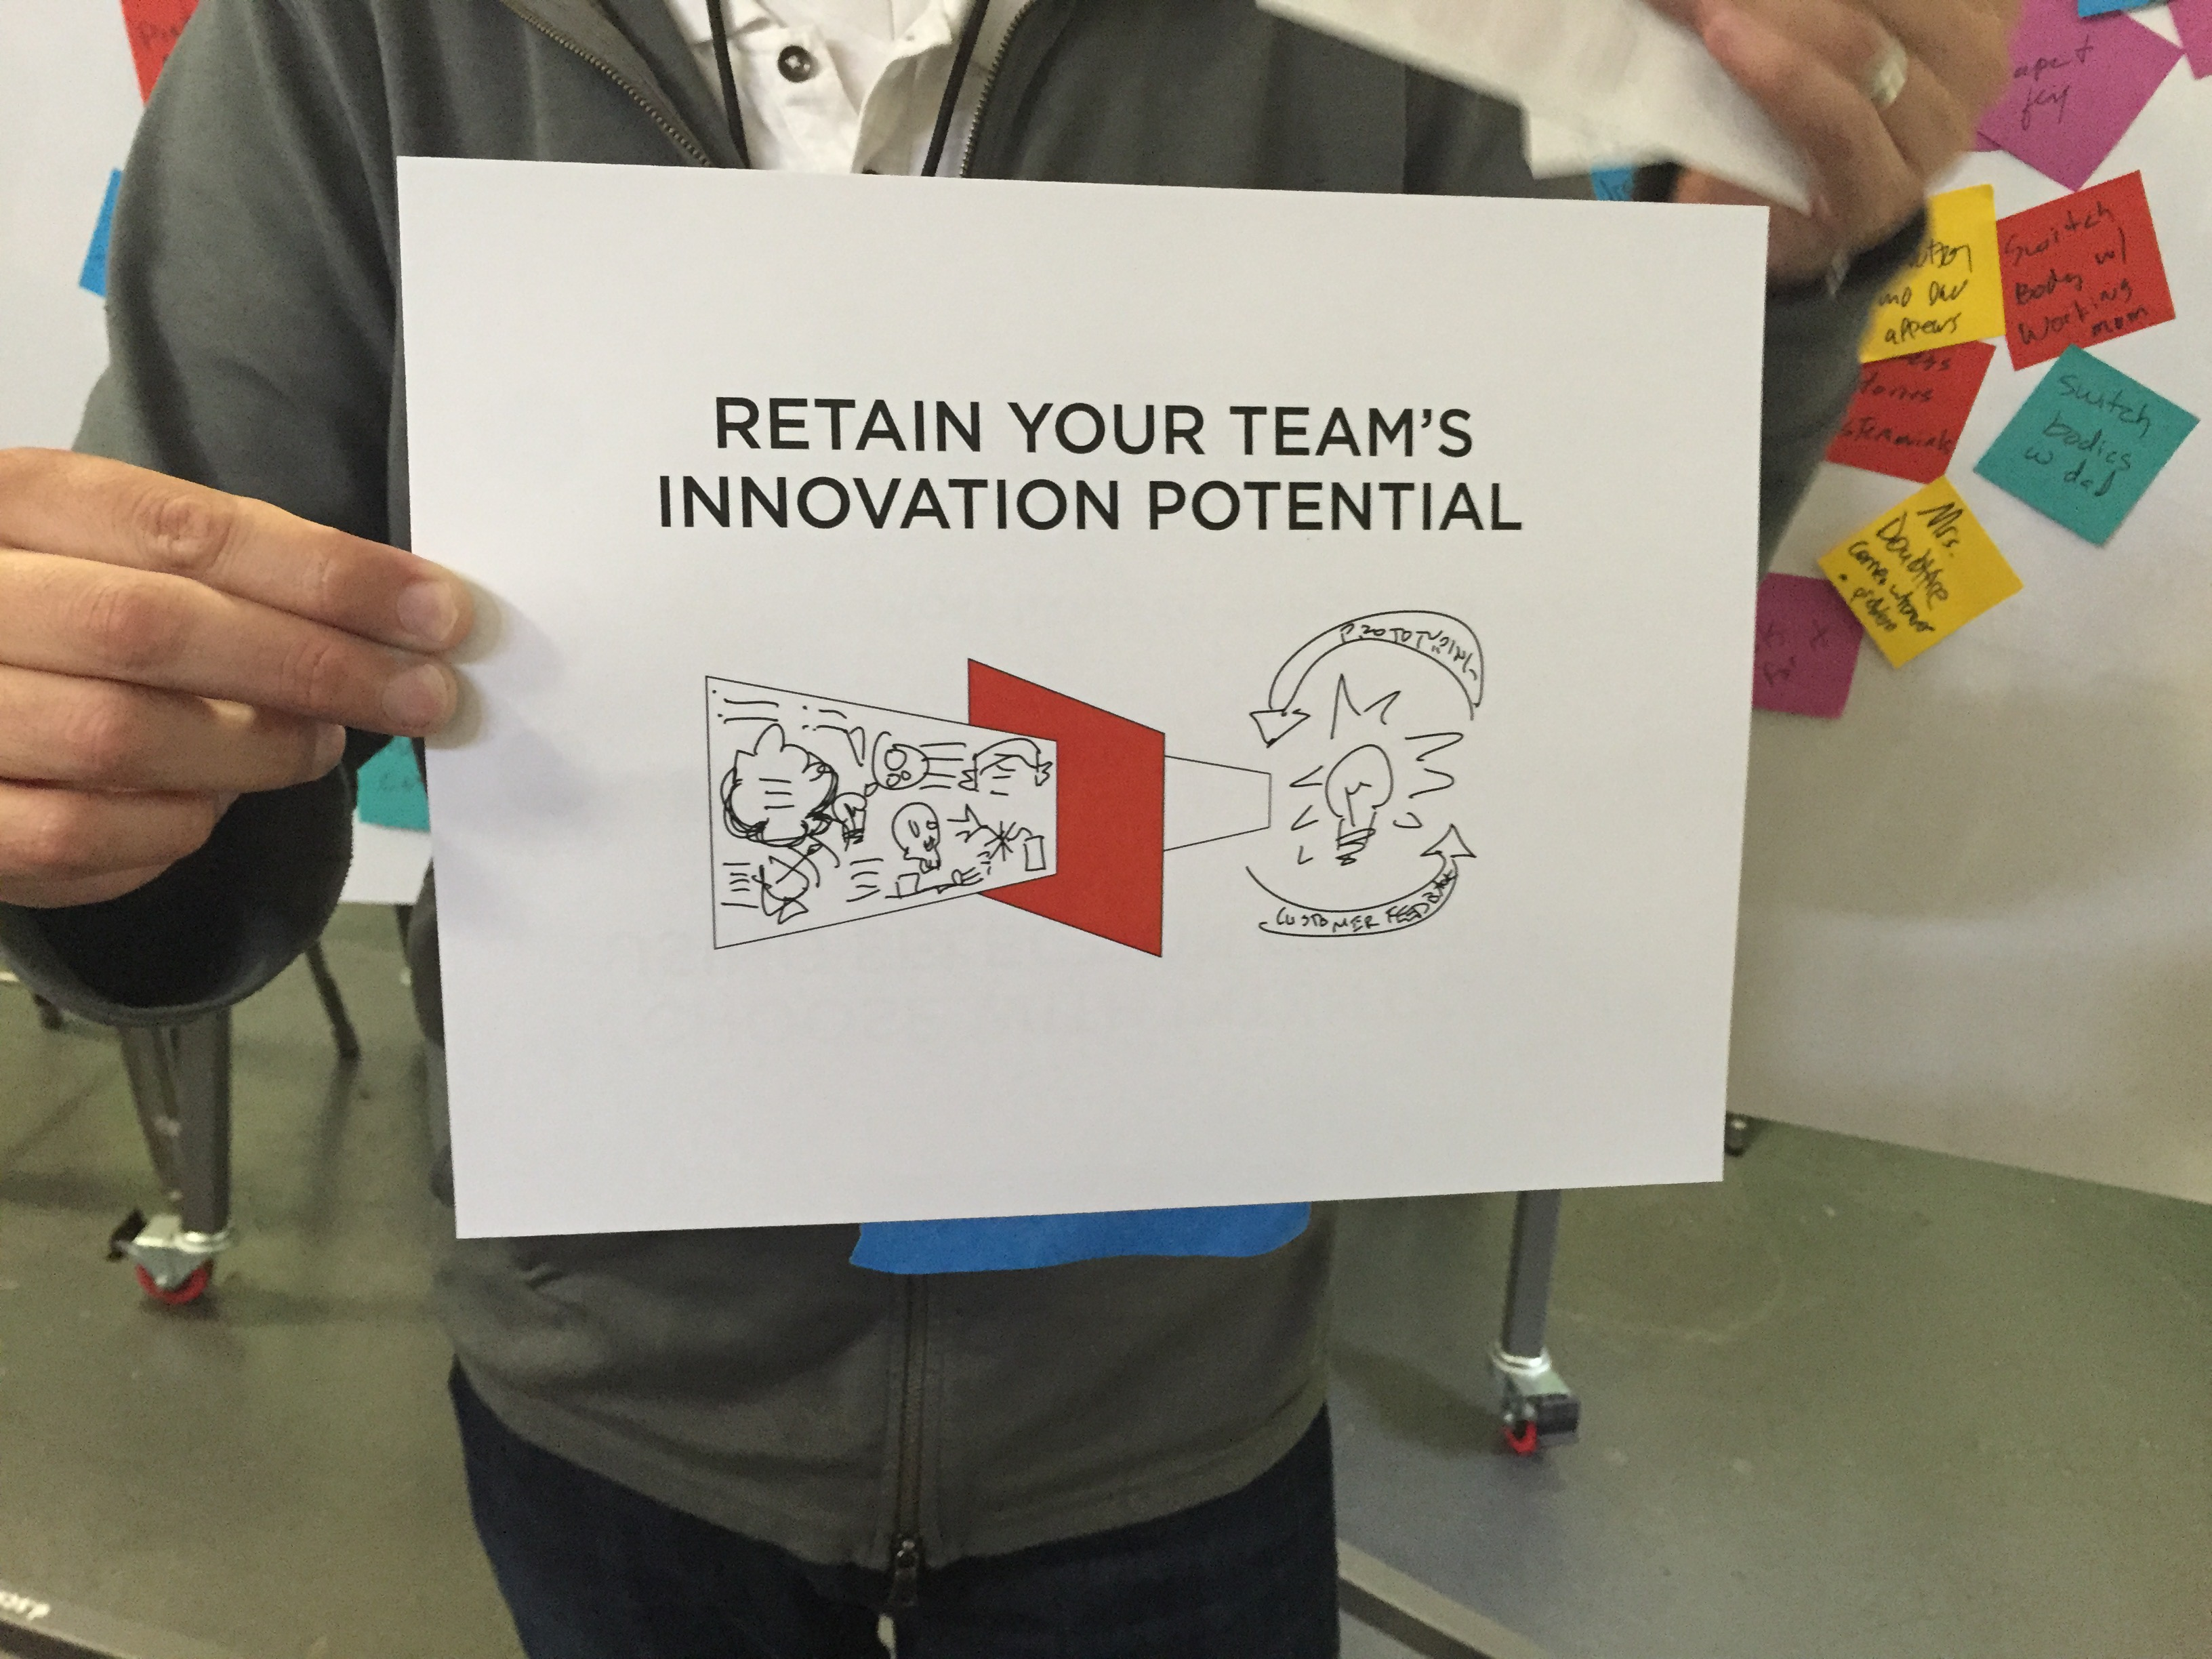 Retain your team's innovative potential